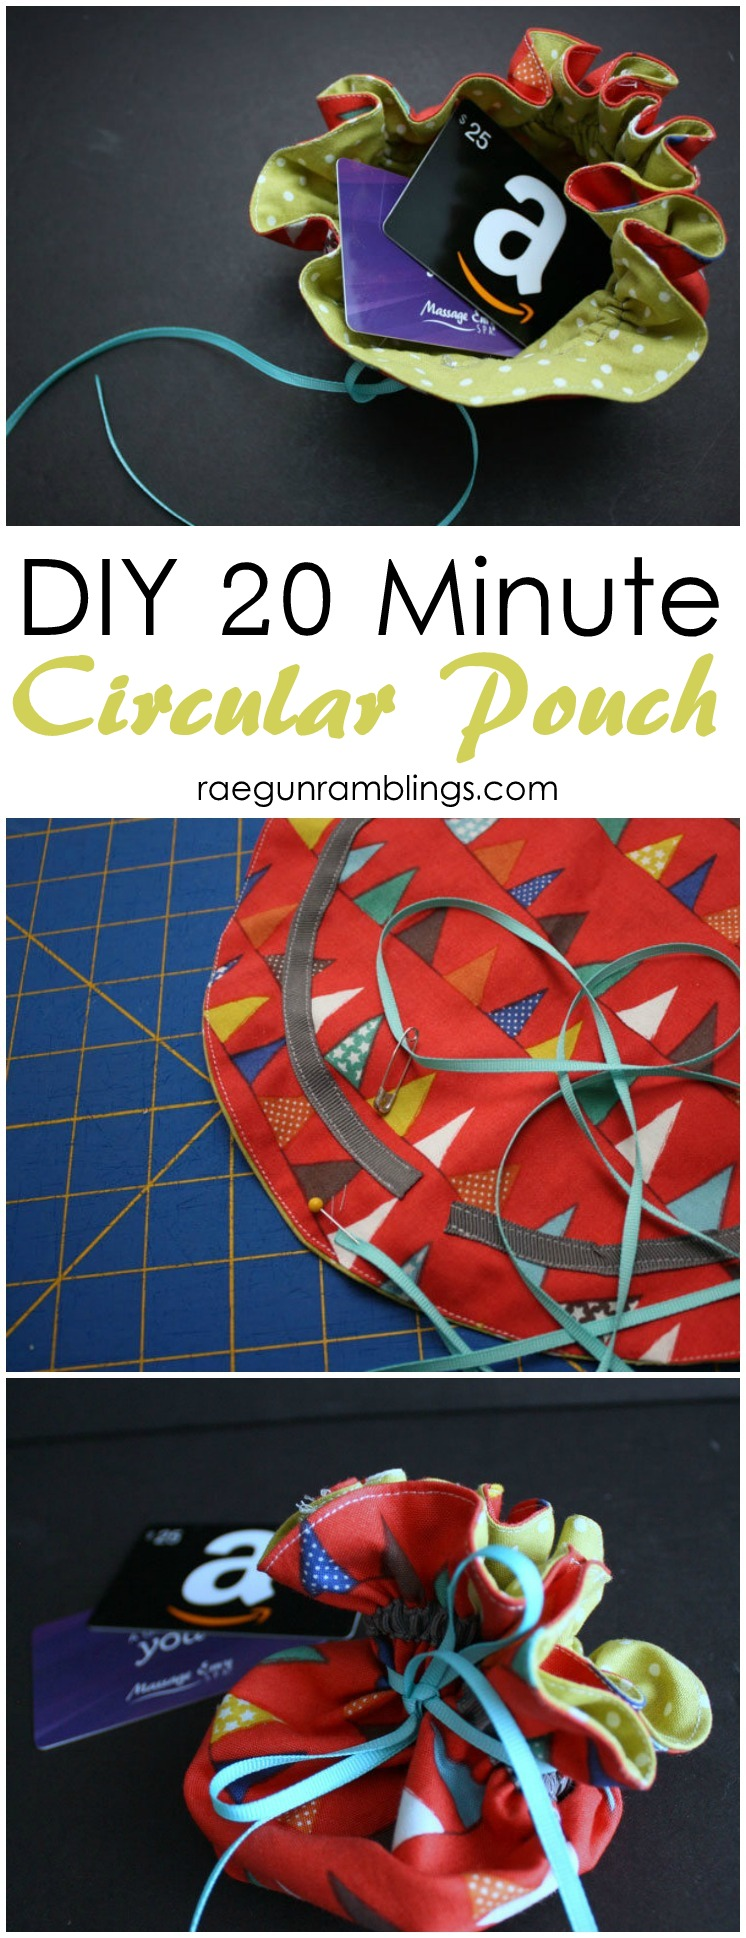 Easy DIY circular pouch tutorial